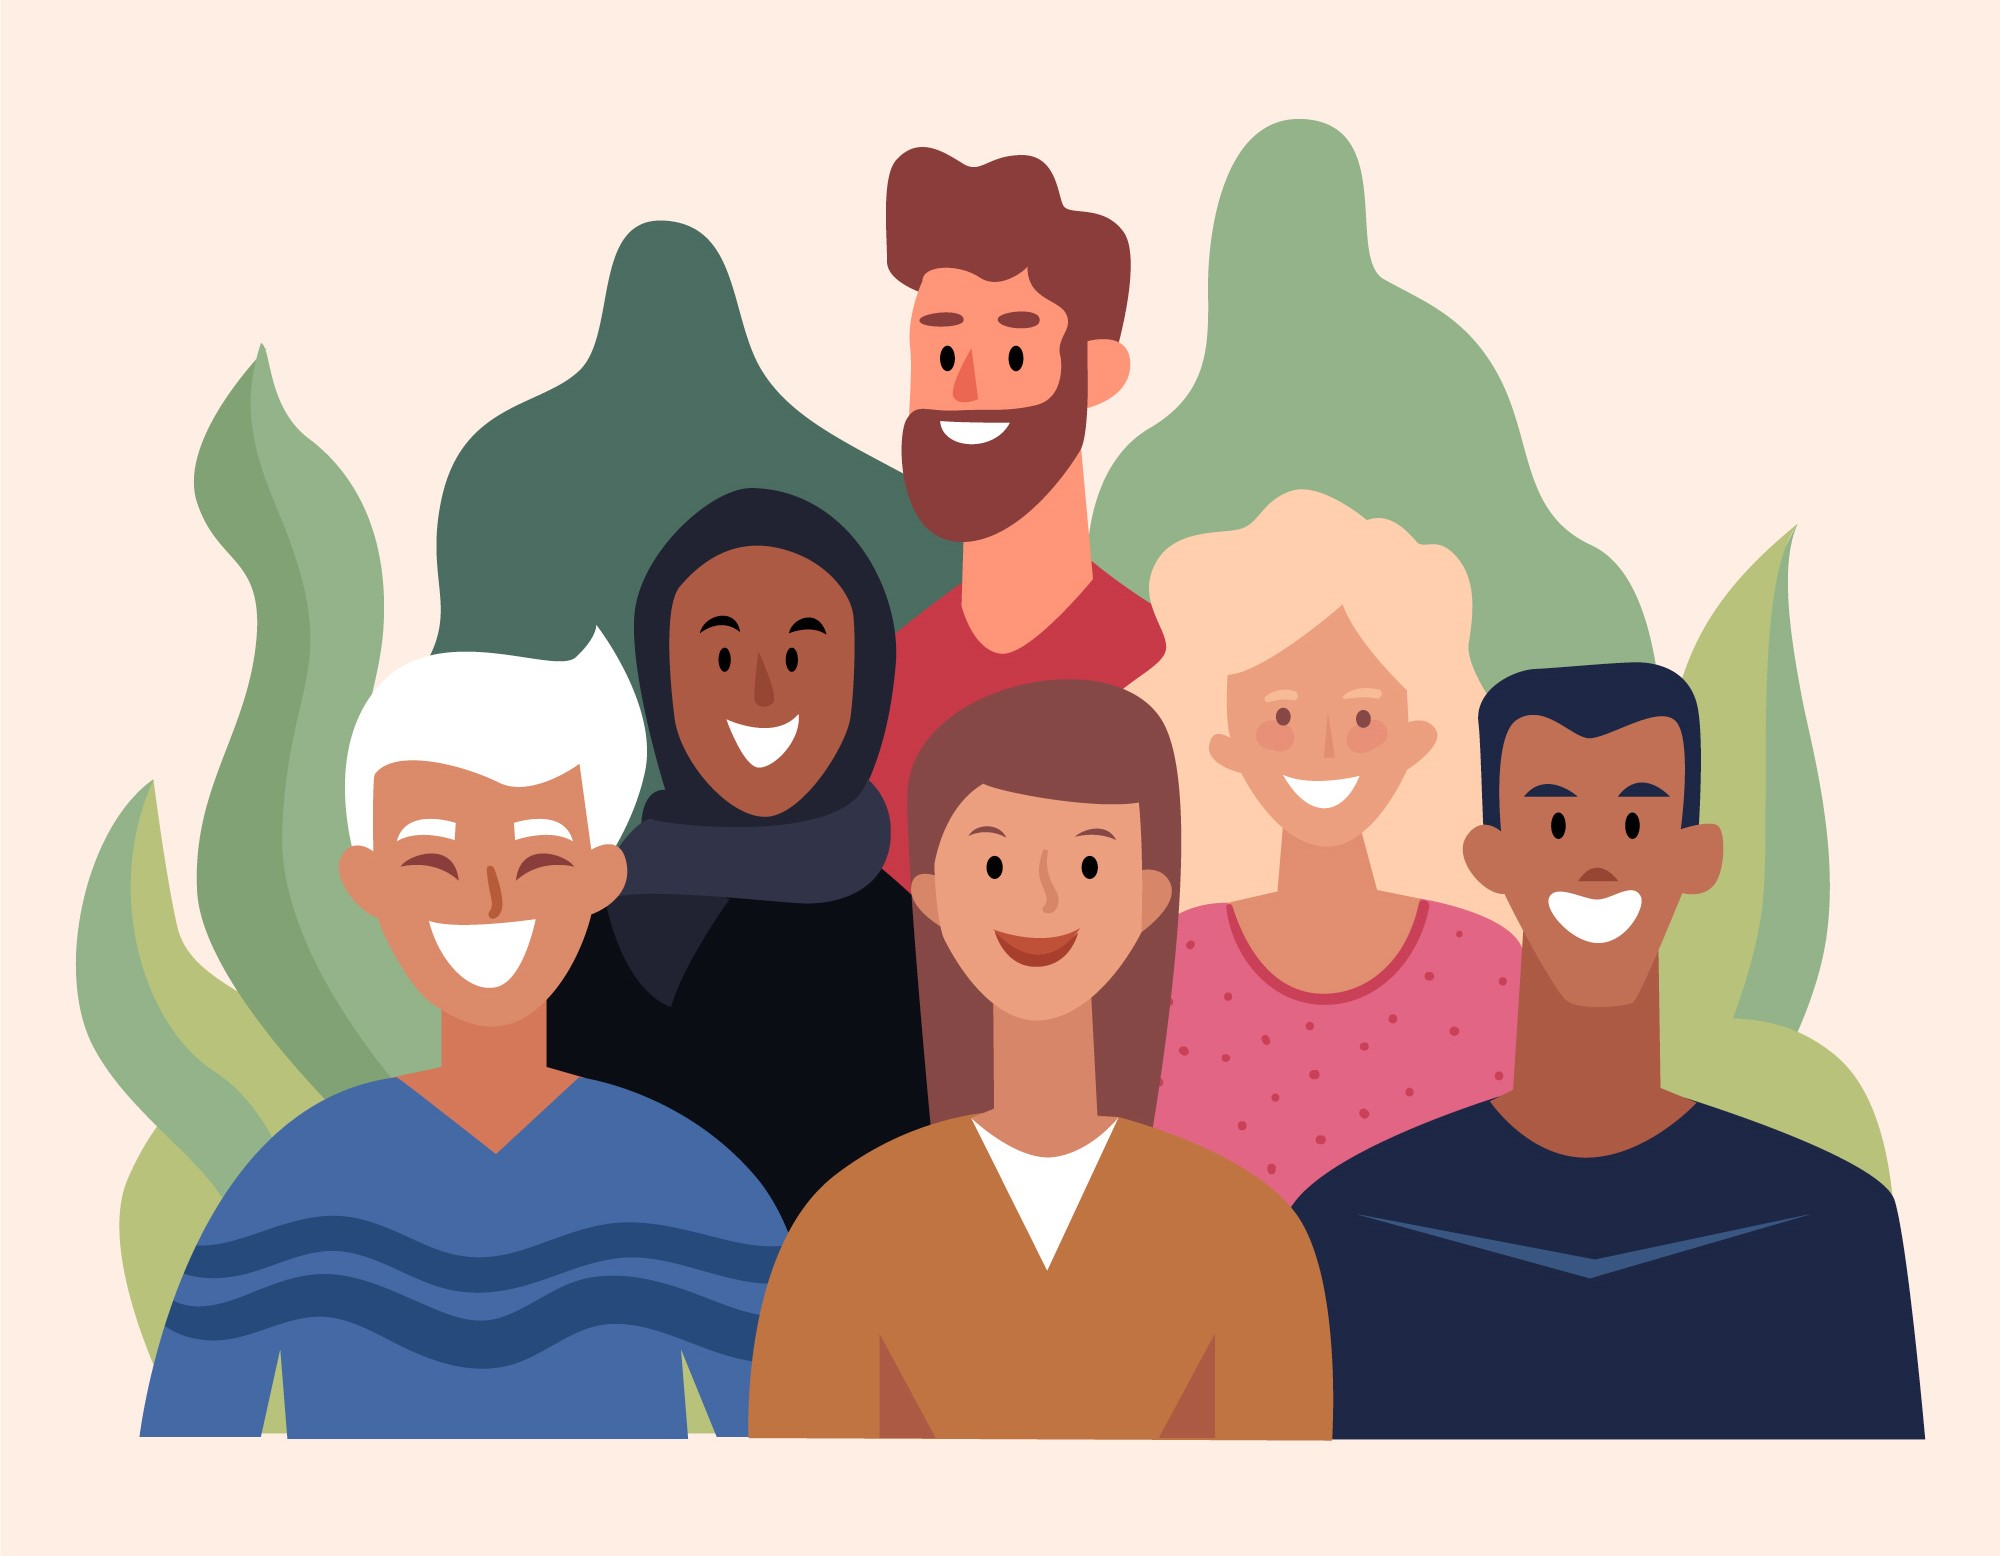 Fostering diversity and inclusion in the workplace